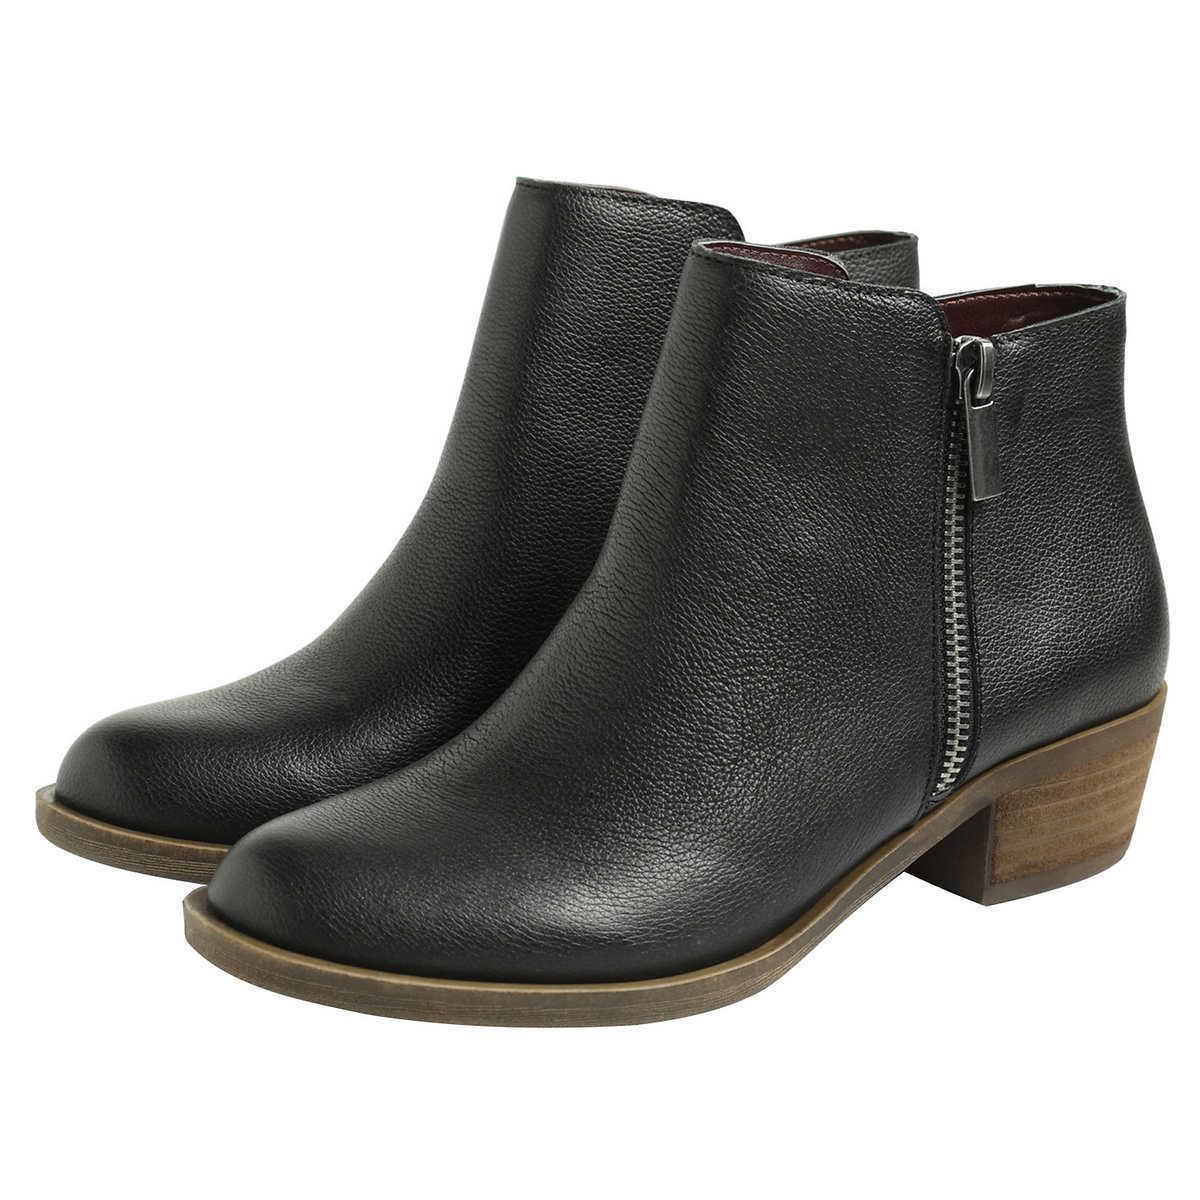 Kensie Women's Short Leather Boots, Ladies Ankle Booties, Bl